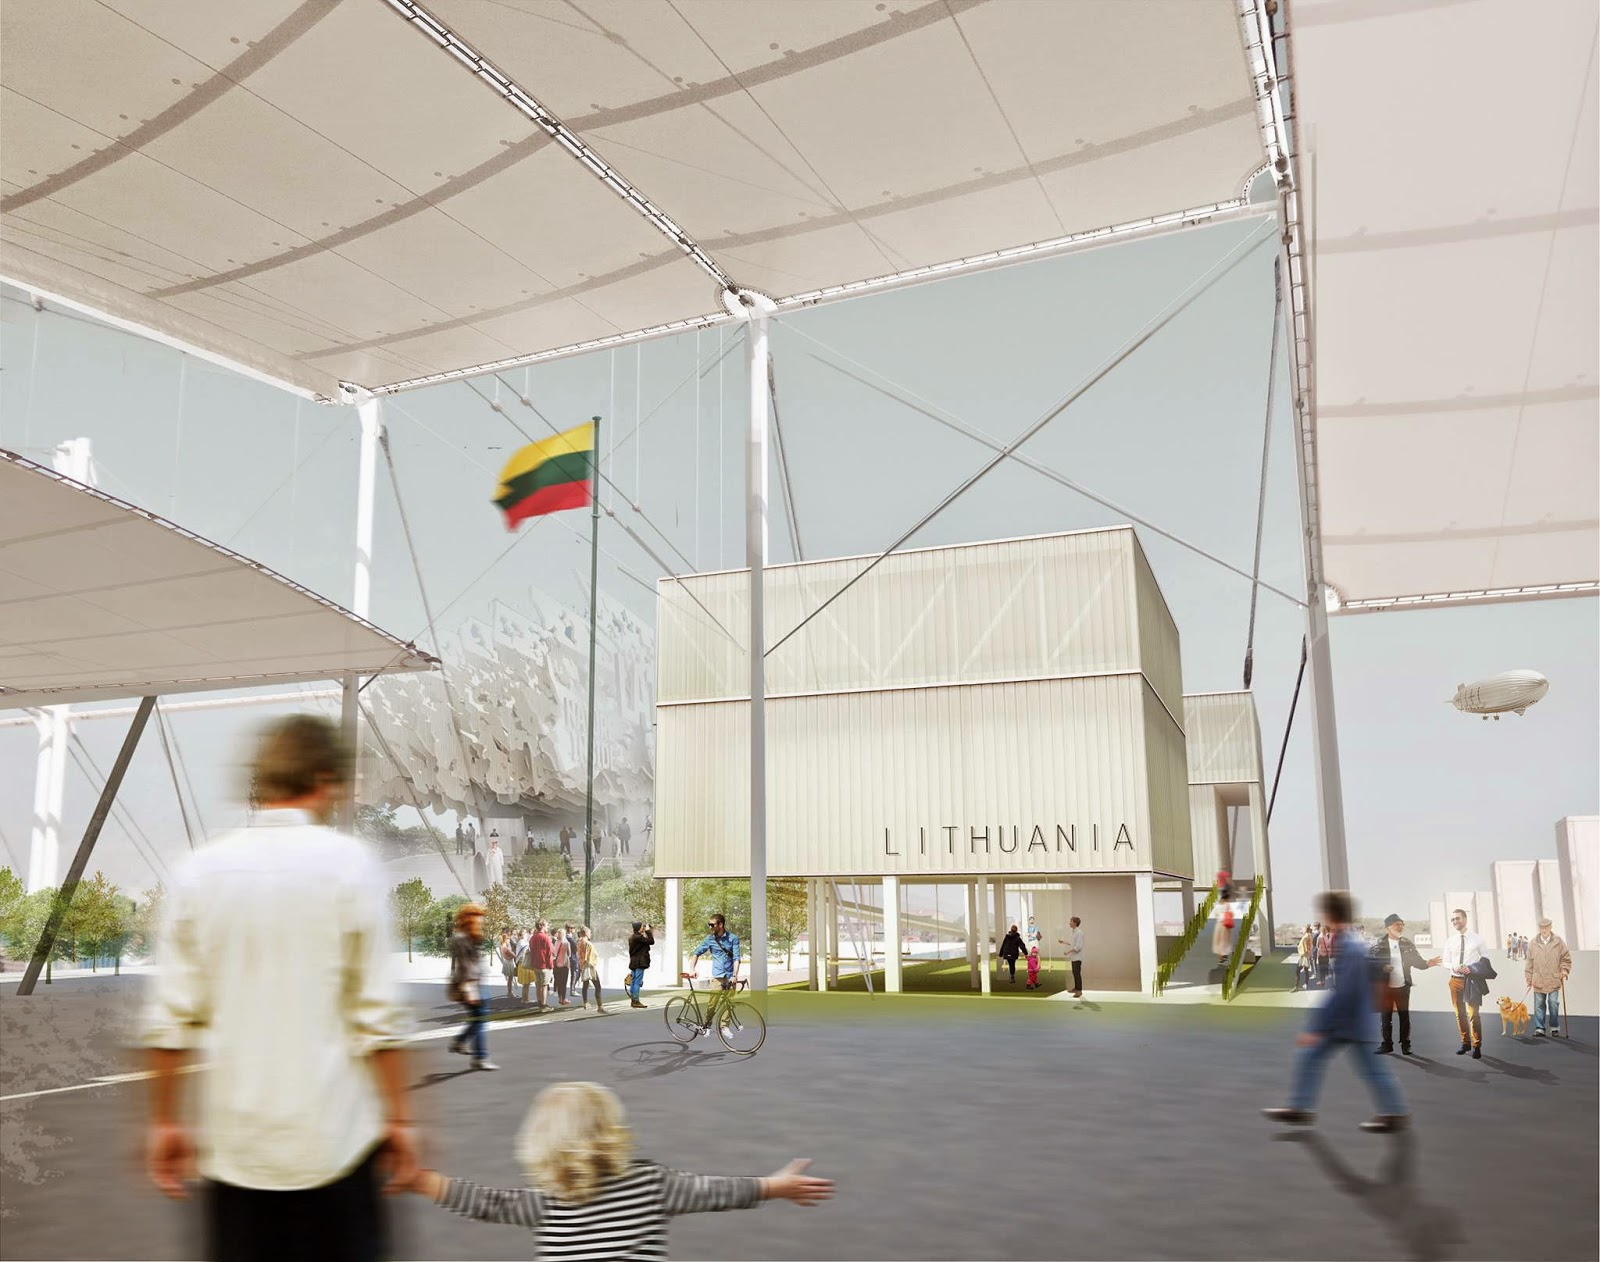 Expo 2015 Milano Blog Architecture Of Lithuanian Pavilion At Expo